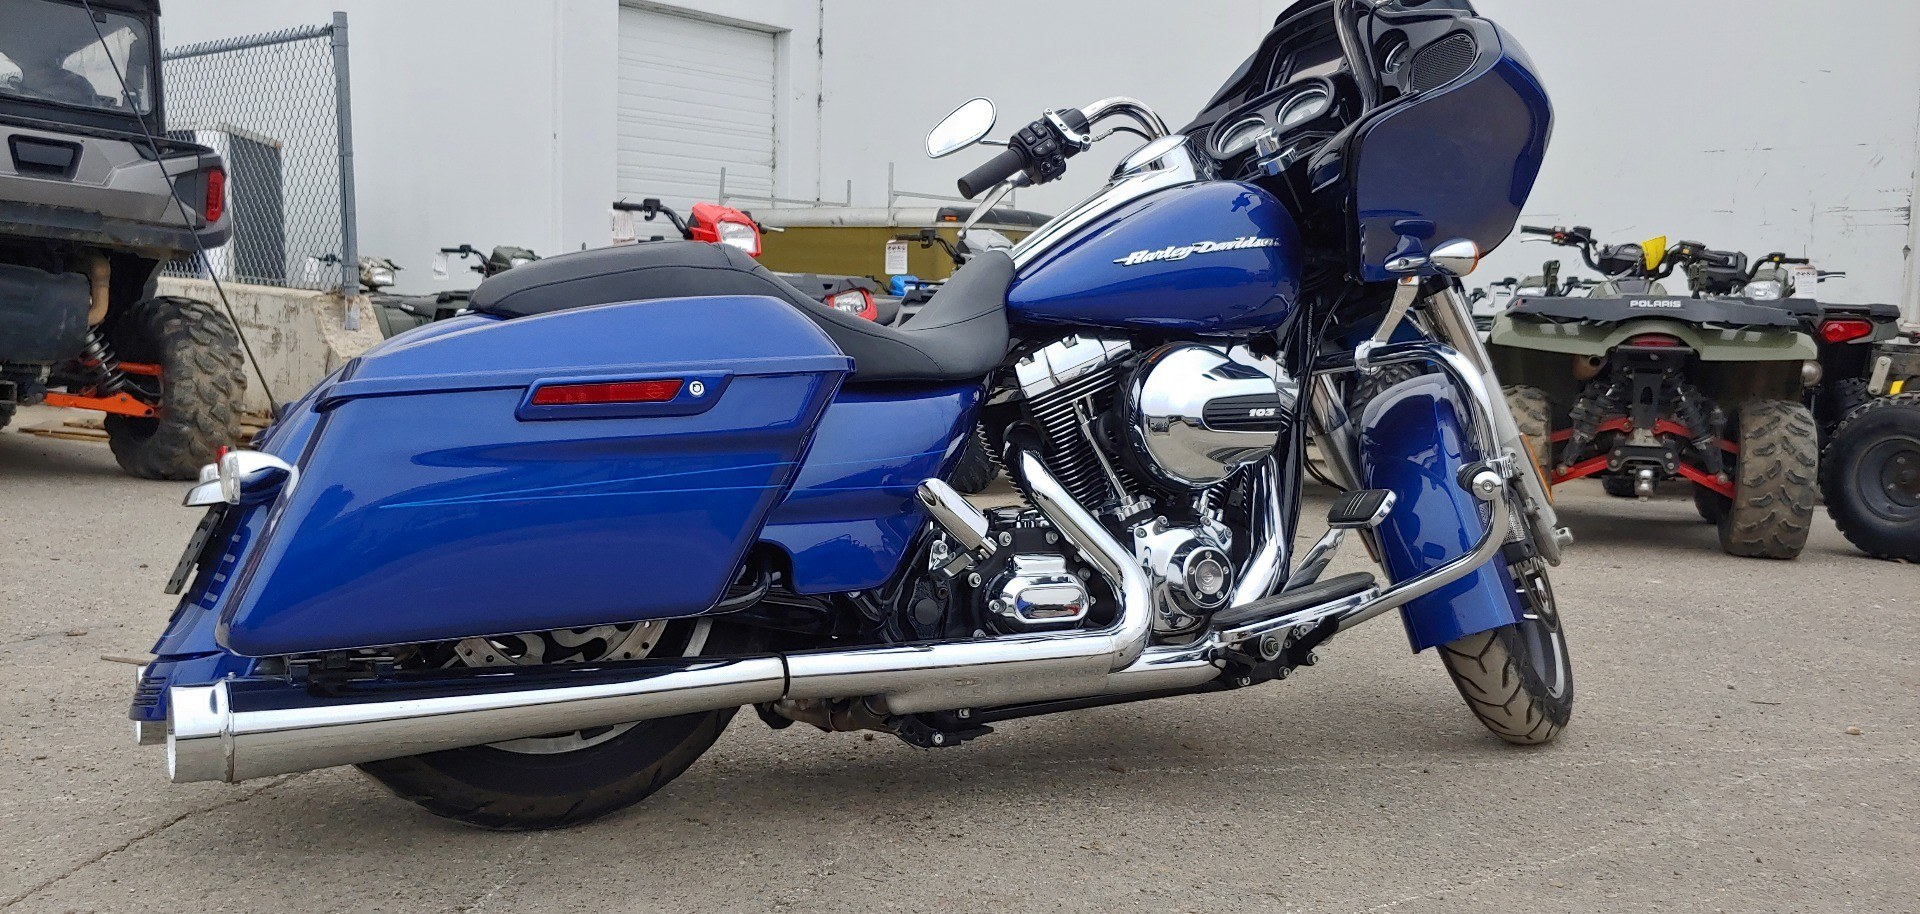 Harley Davidson Michigan >> 2015 Harley Davidson Road Glide Special Motorcycles For Sale In